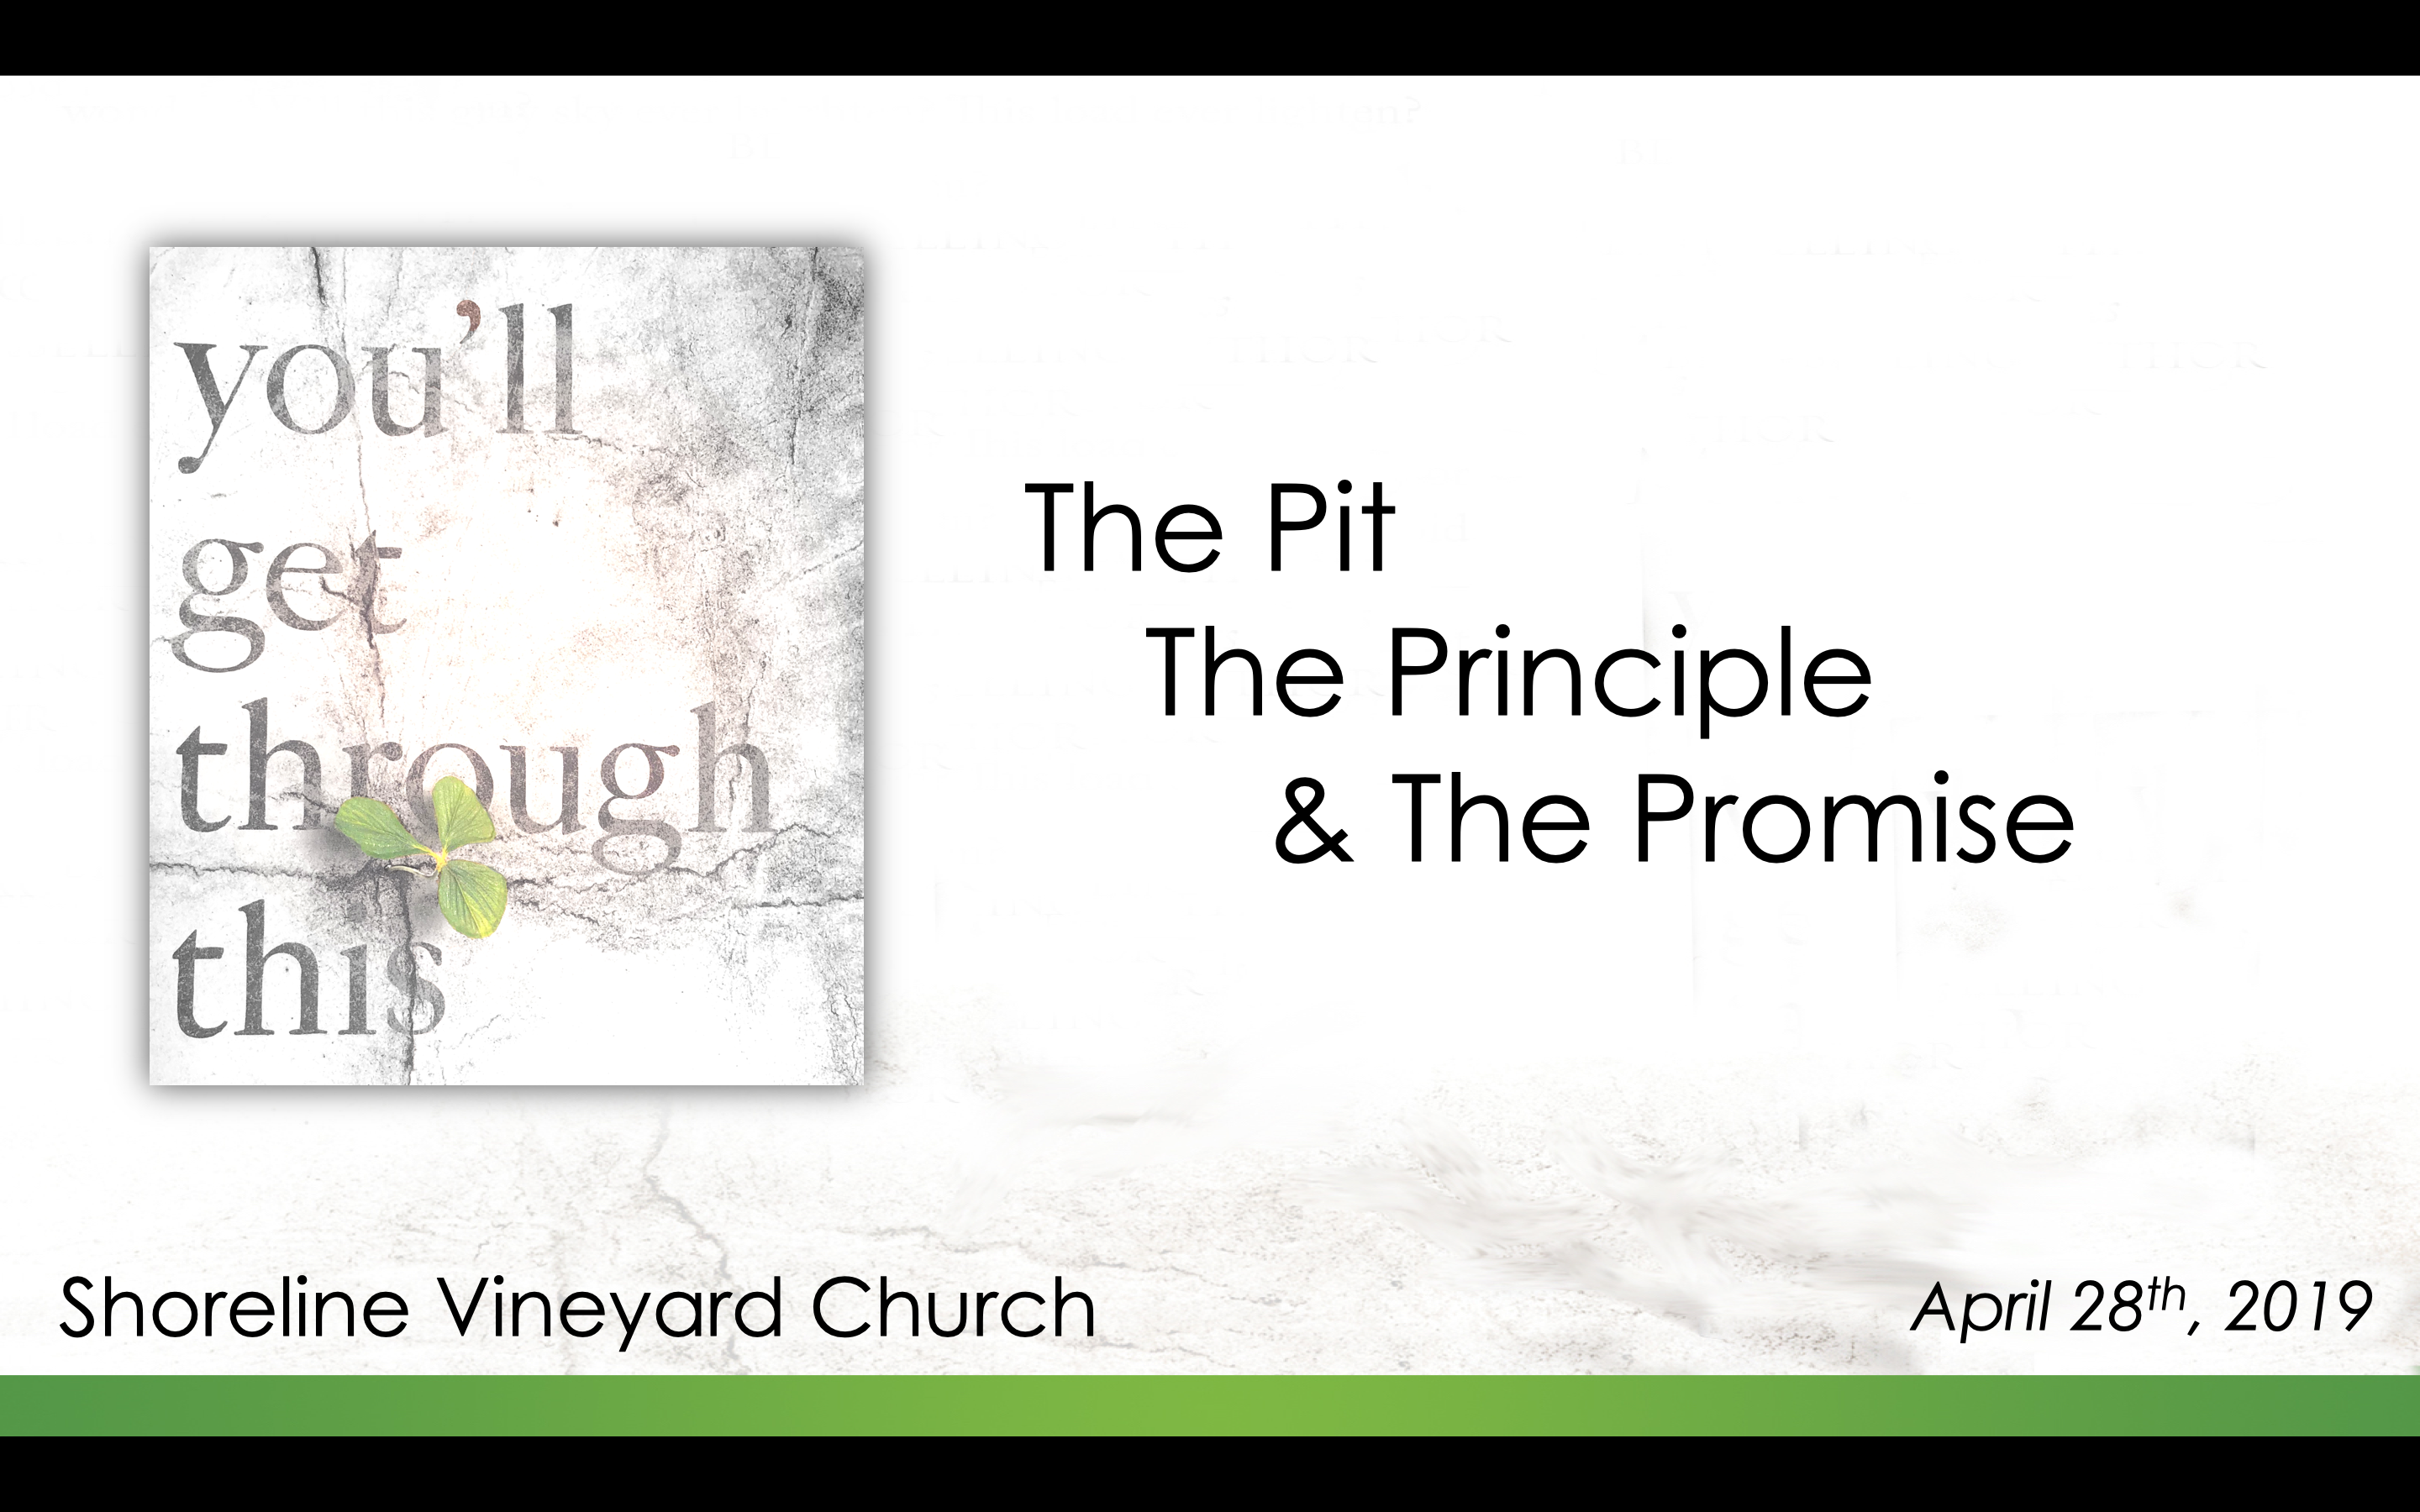 The Pit, The Principle, and The Promise – You'll Get Through This